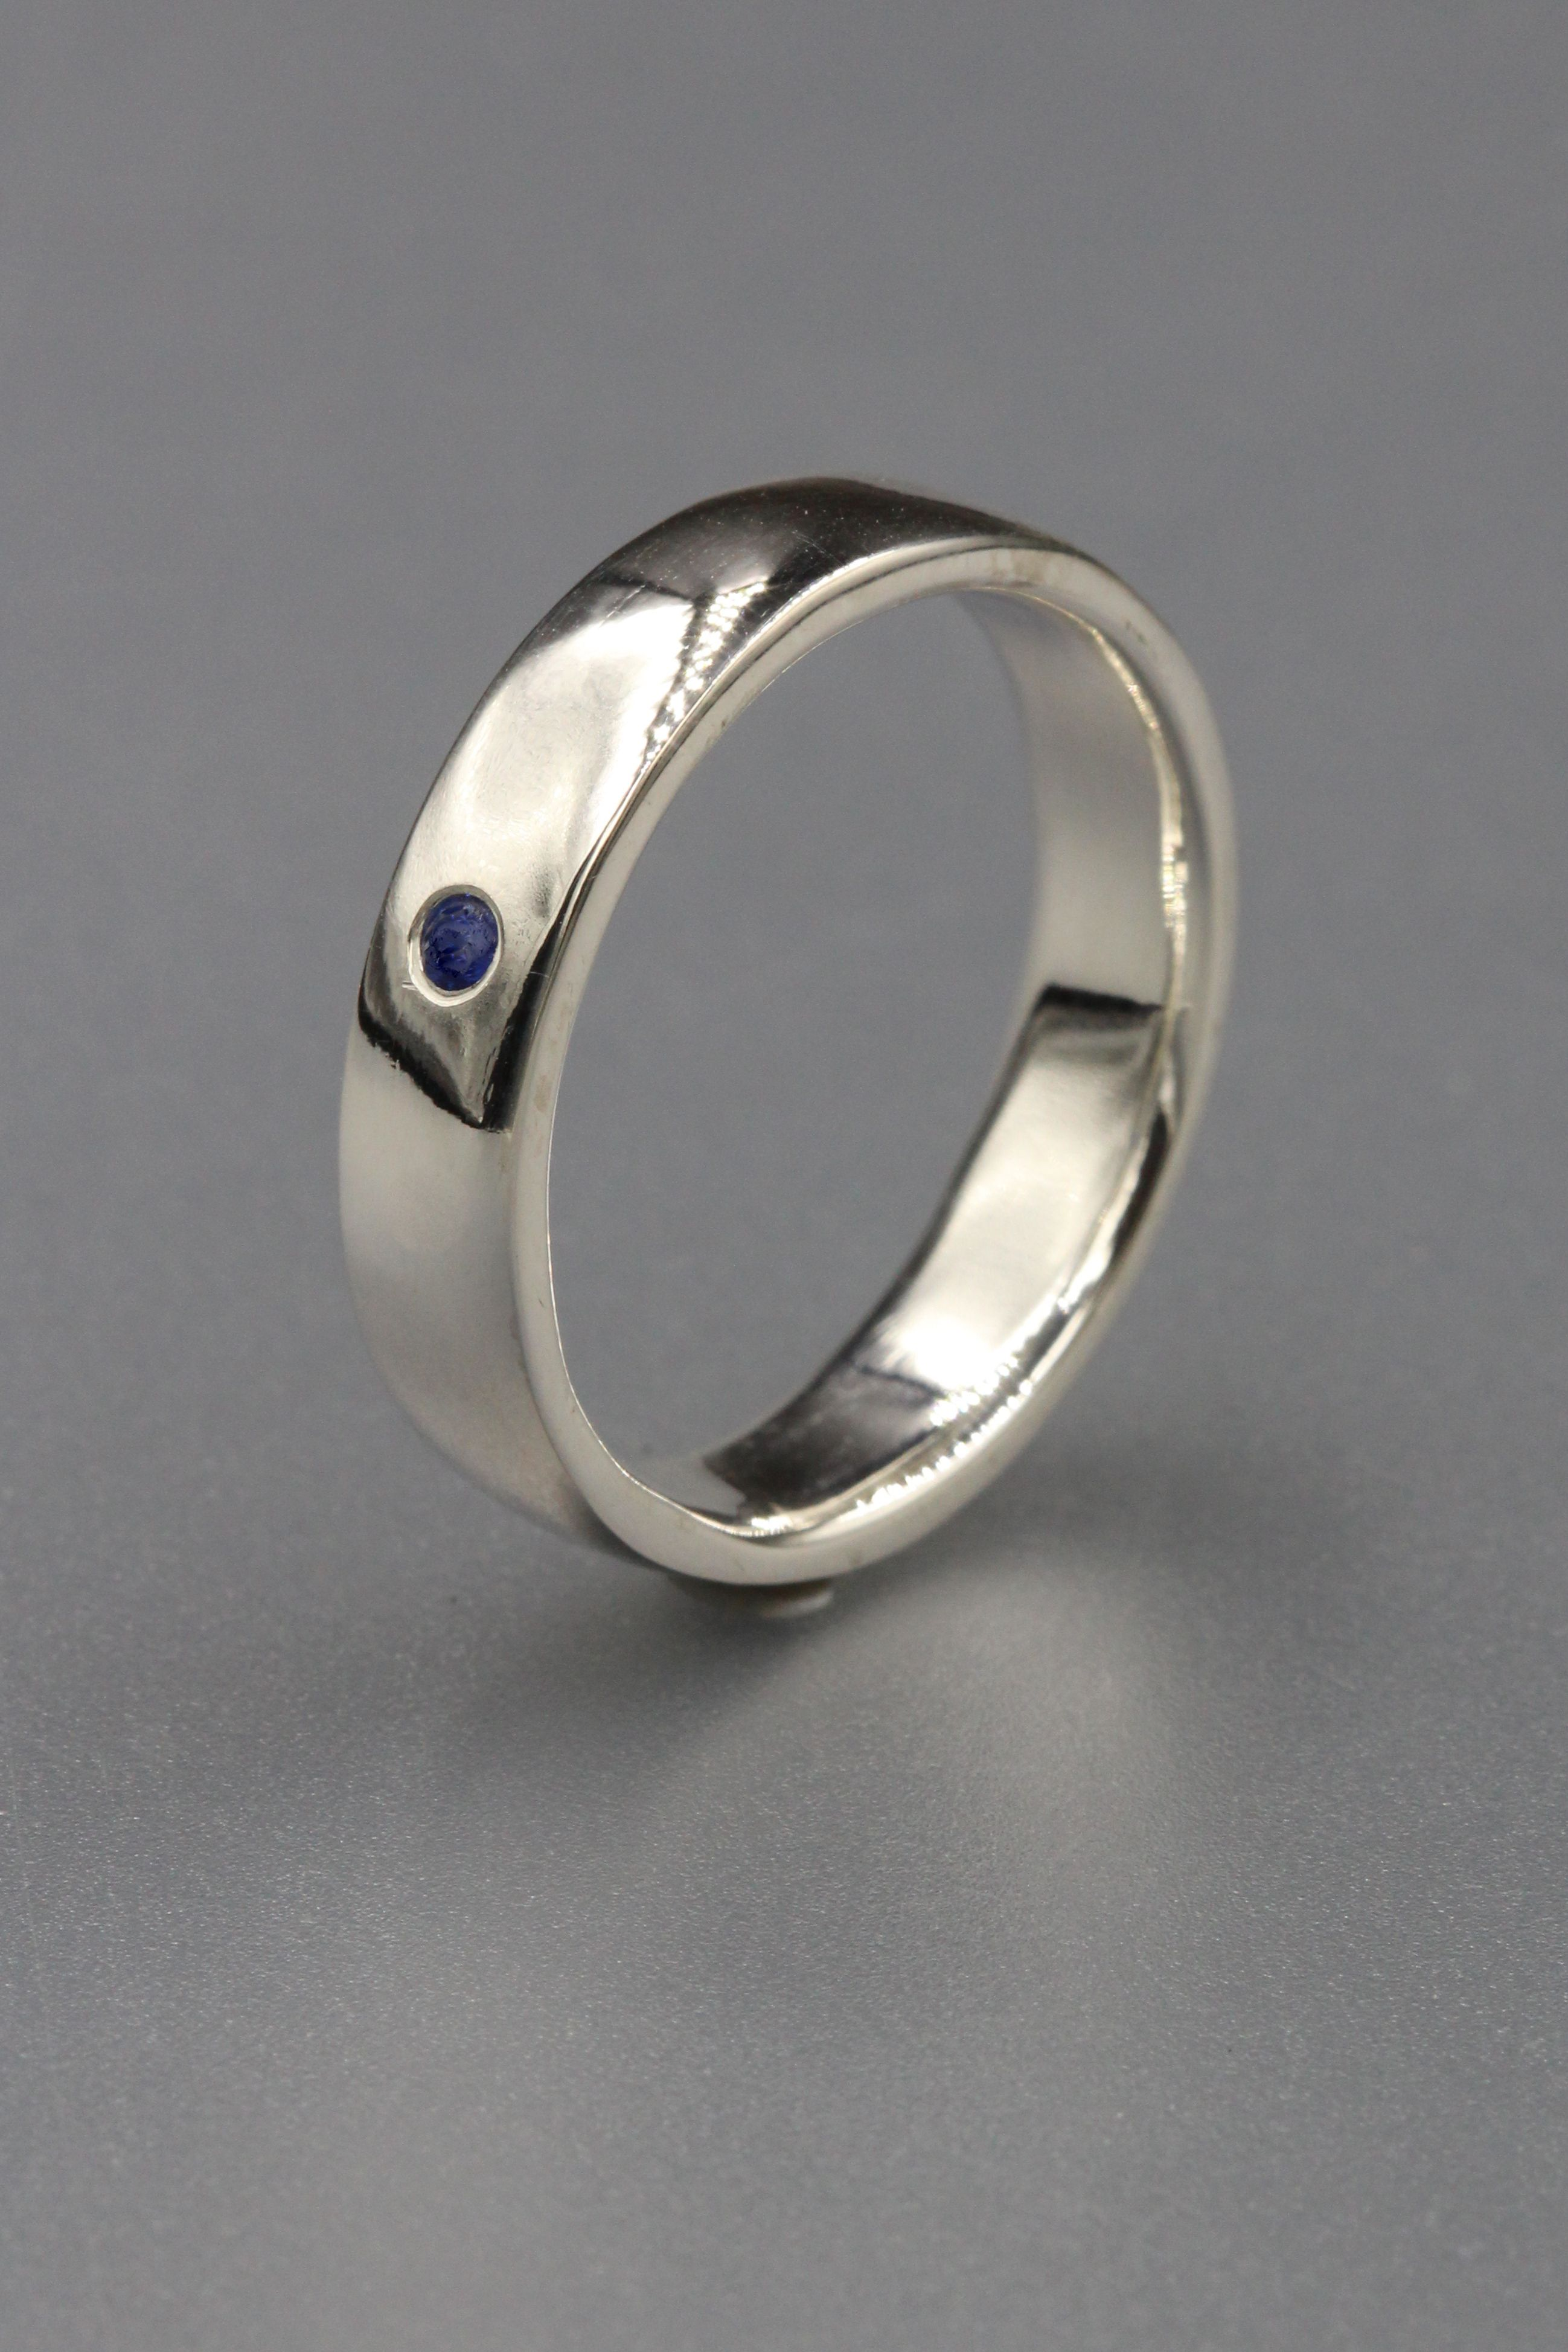 Mens Rings Silver Wedding Bands Mens Rings Silver Blue Sapphire Etsy Blue Stone Ring Jewelry Rings Engagement Women Rings